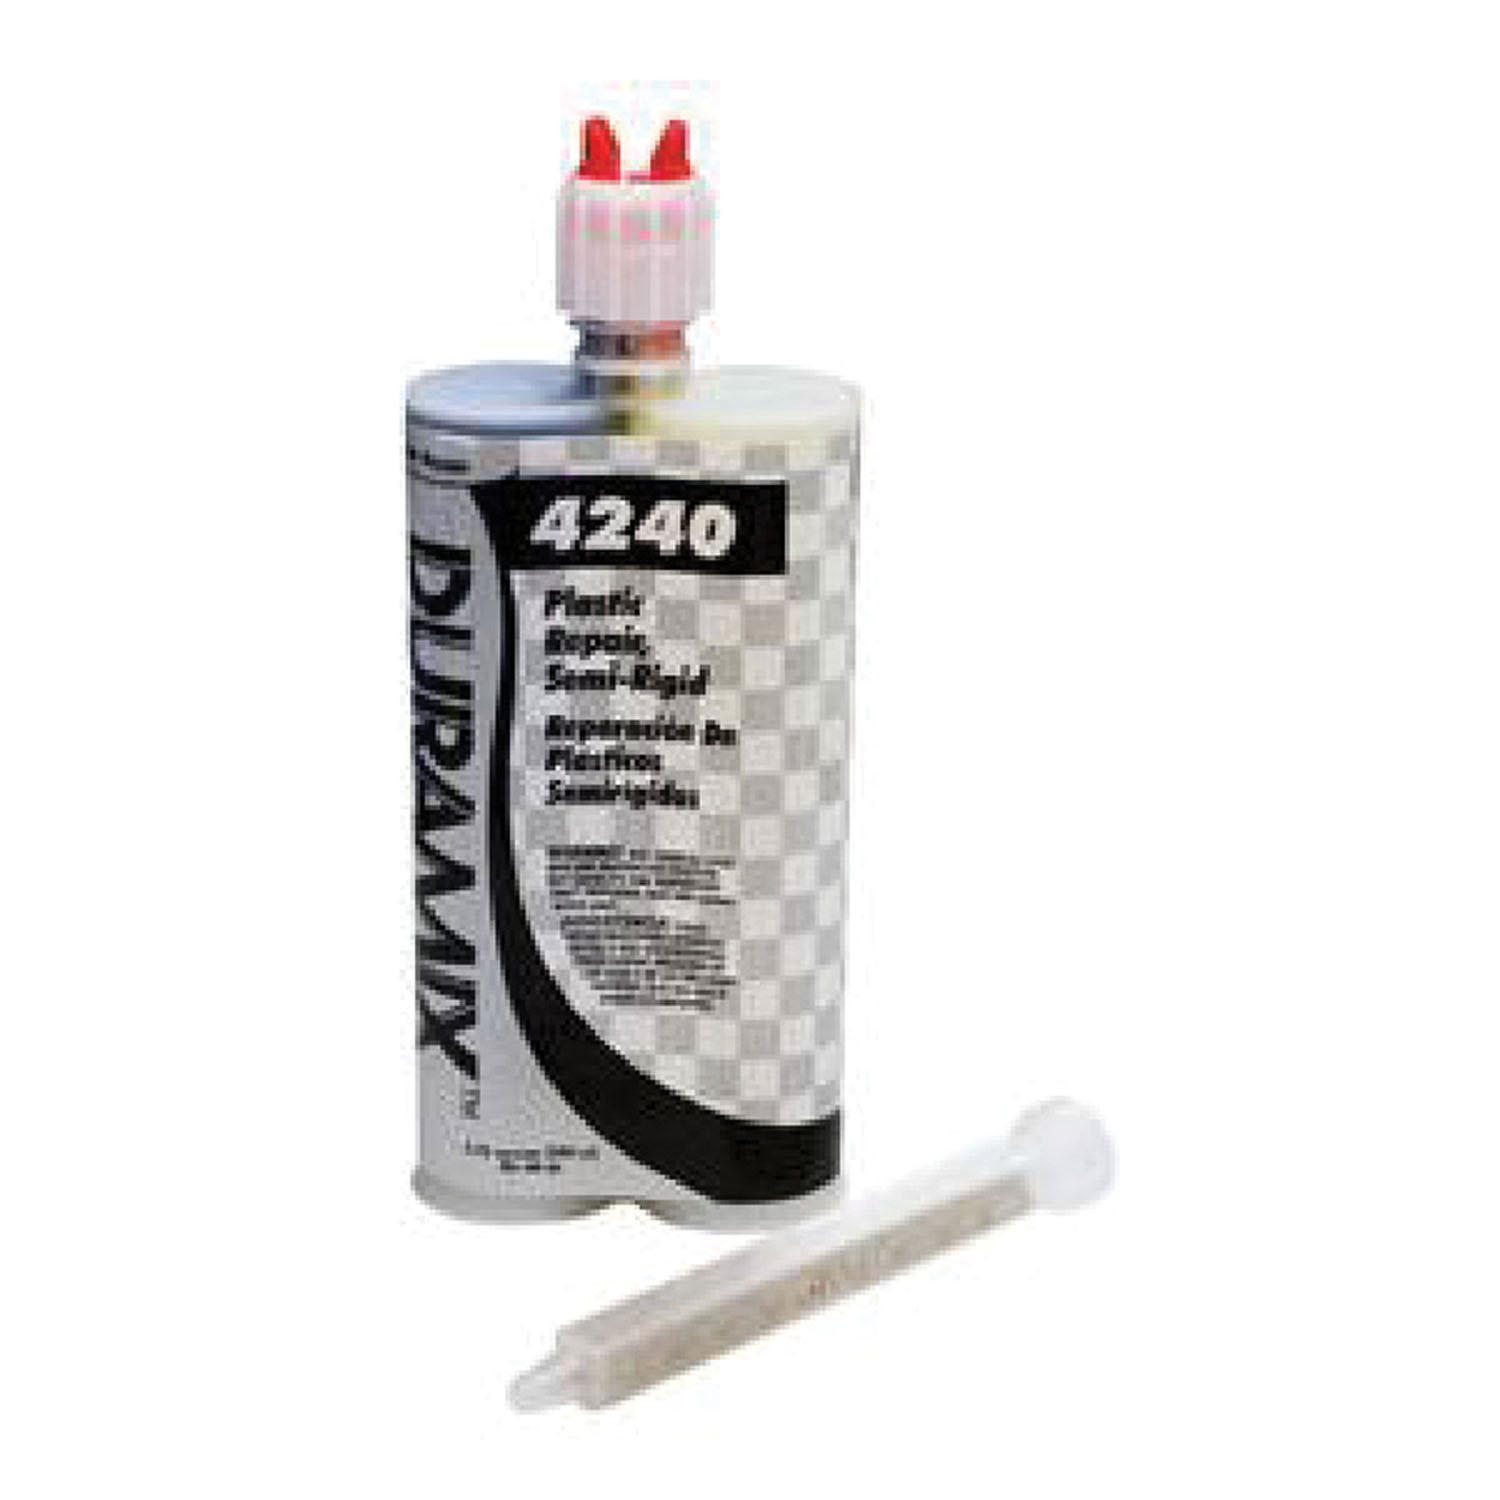 Duramix™ Plastic Repair Semi-Rigid 04240, 200 mL DRX-4240